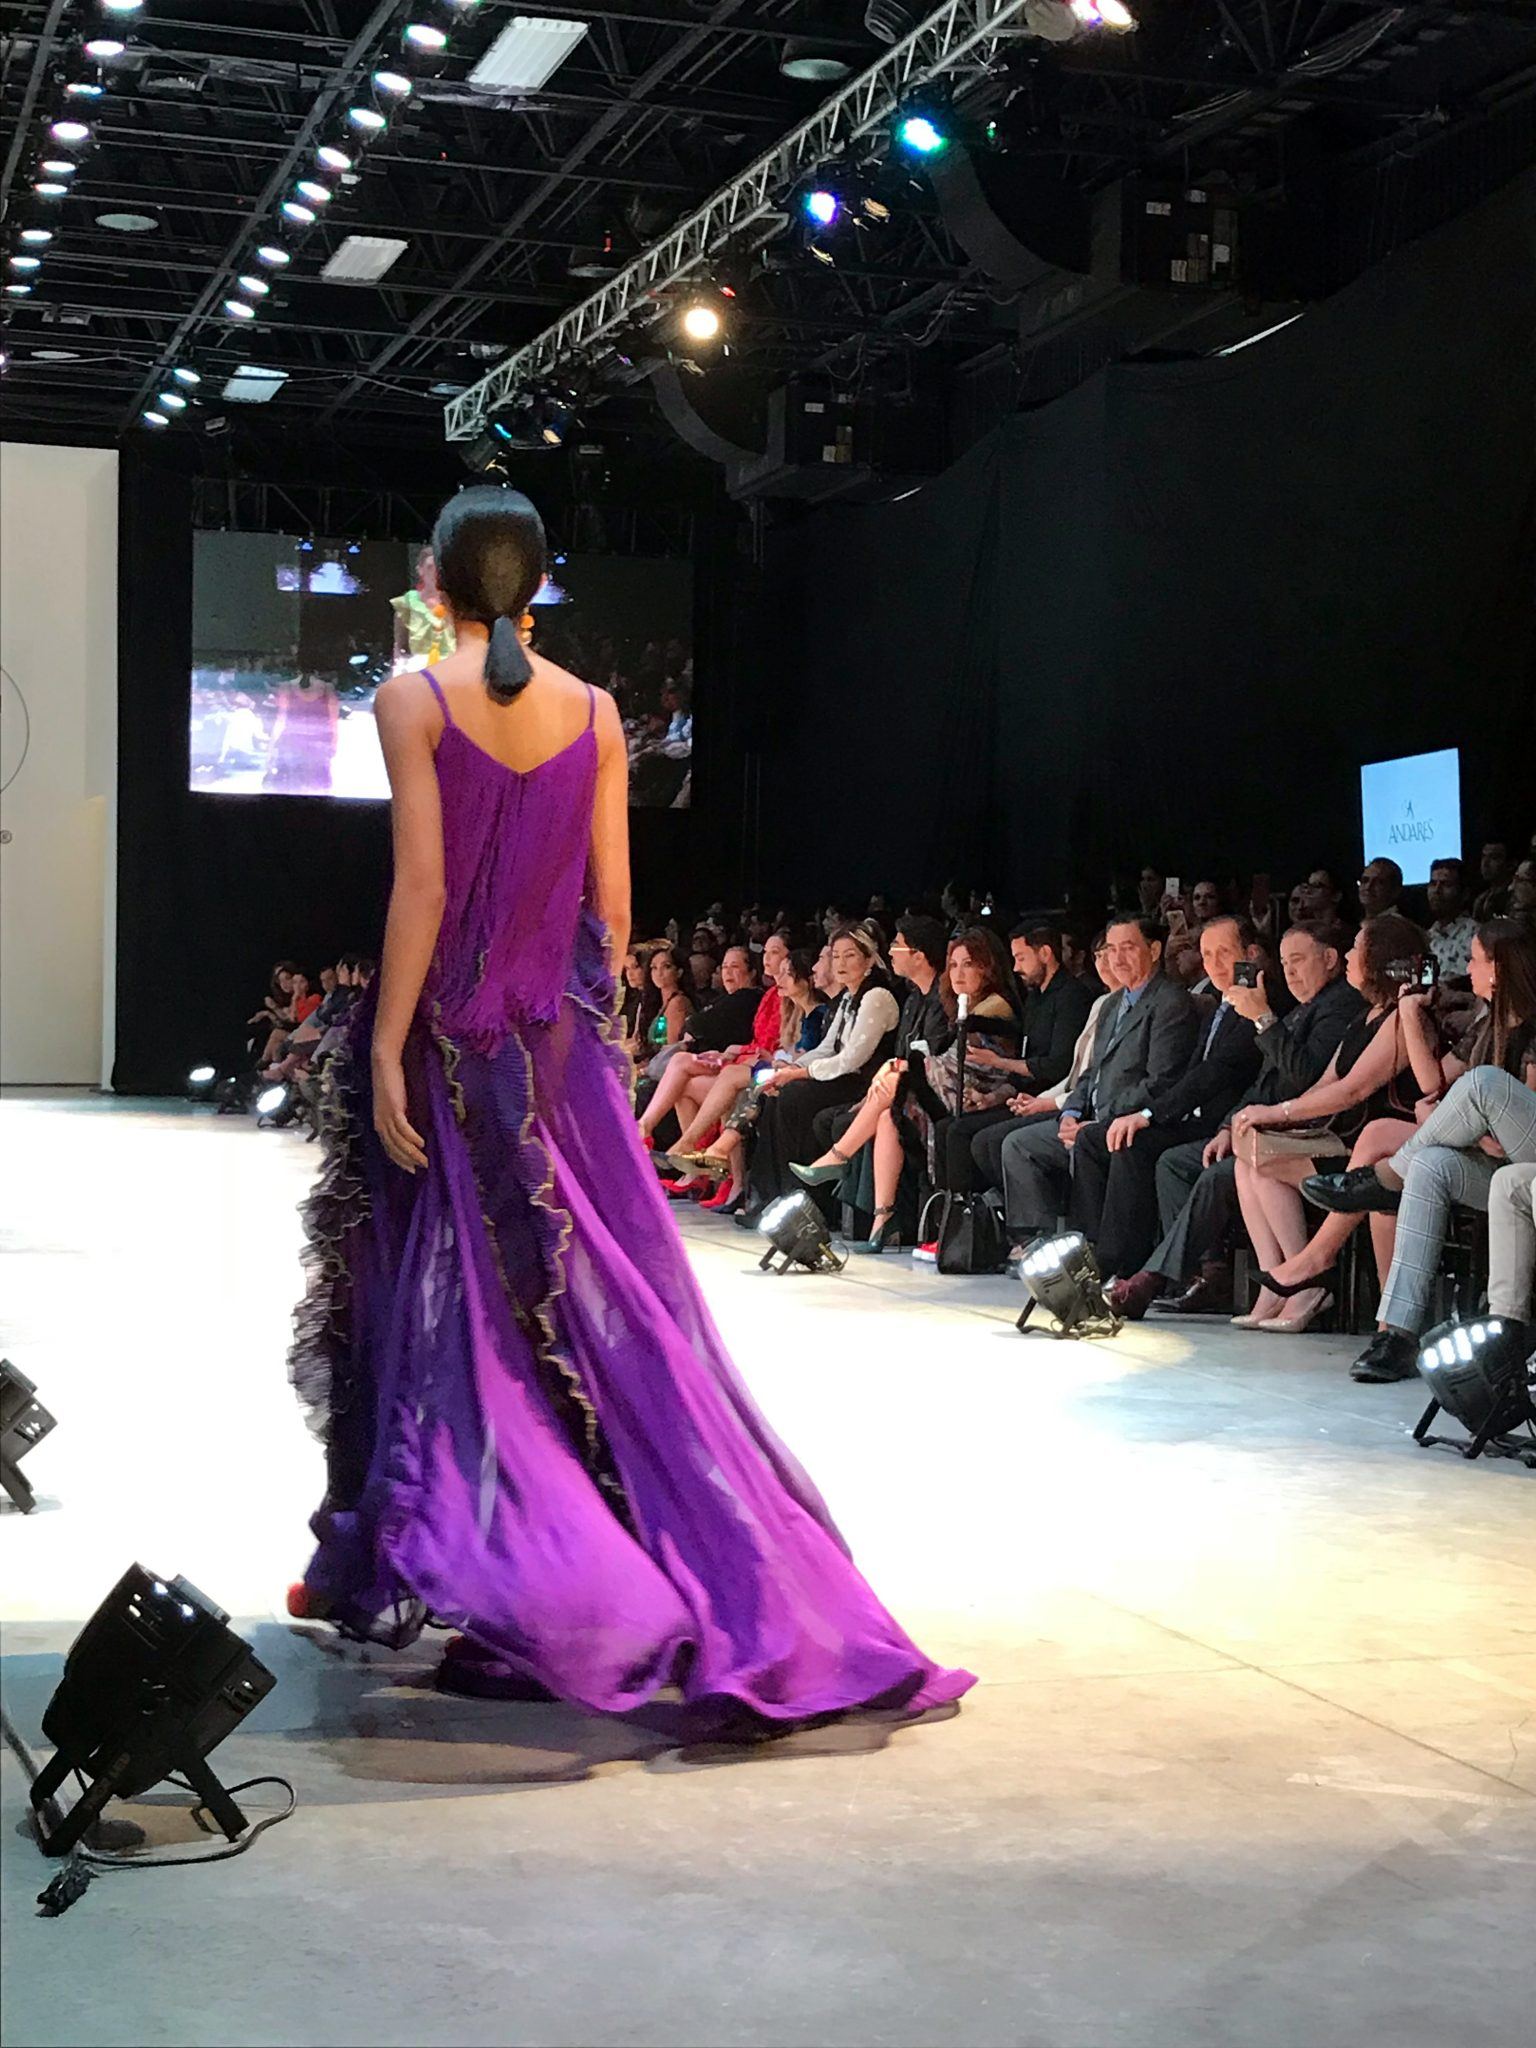 Benito Santos Models on the runway wearing redish dresses